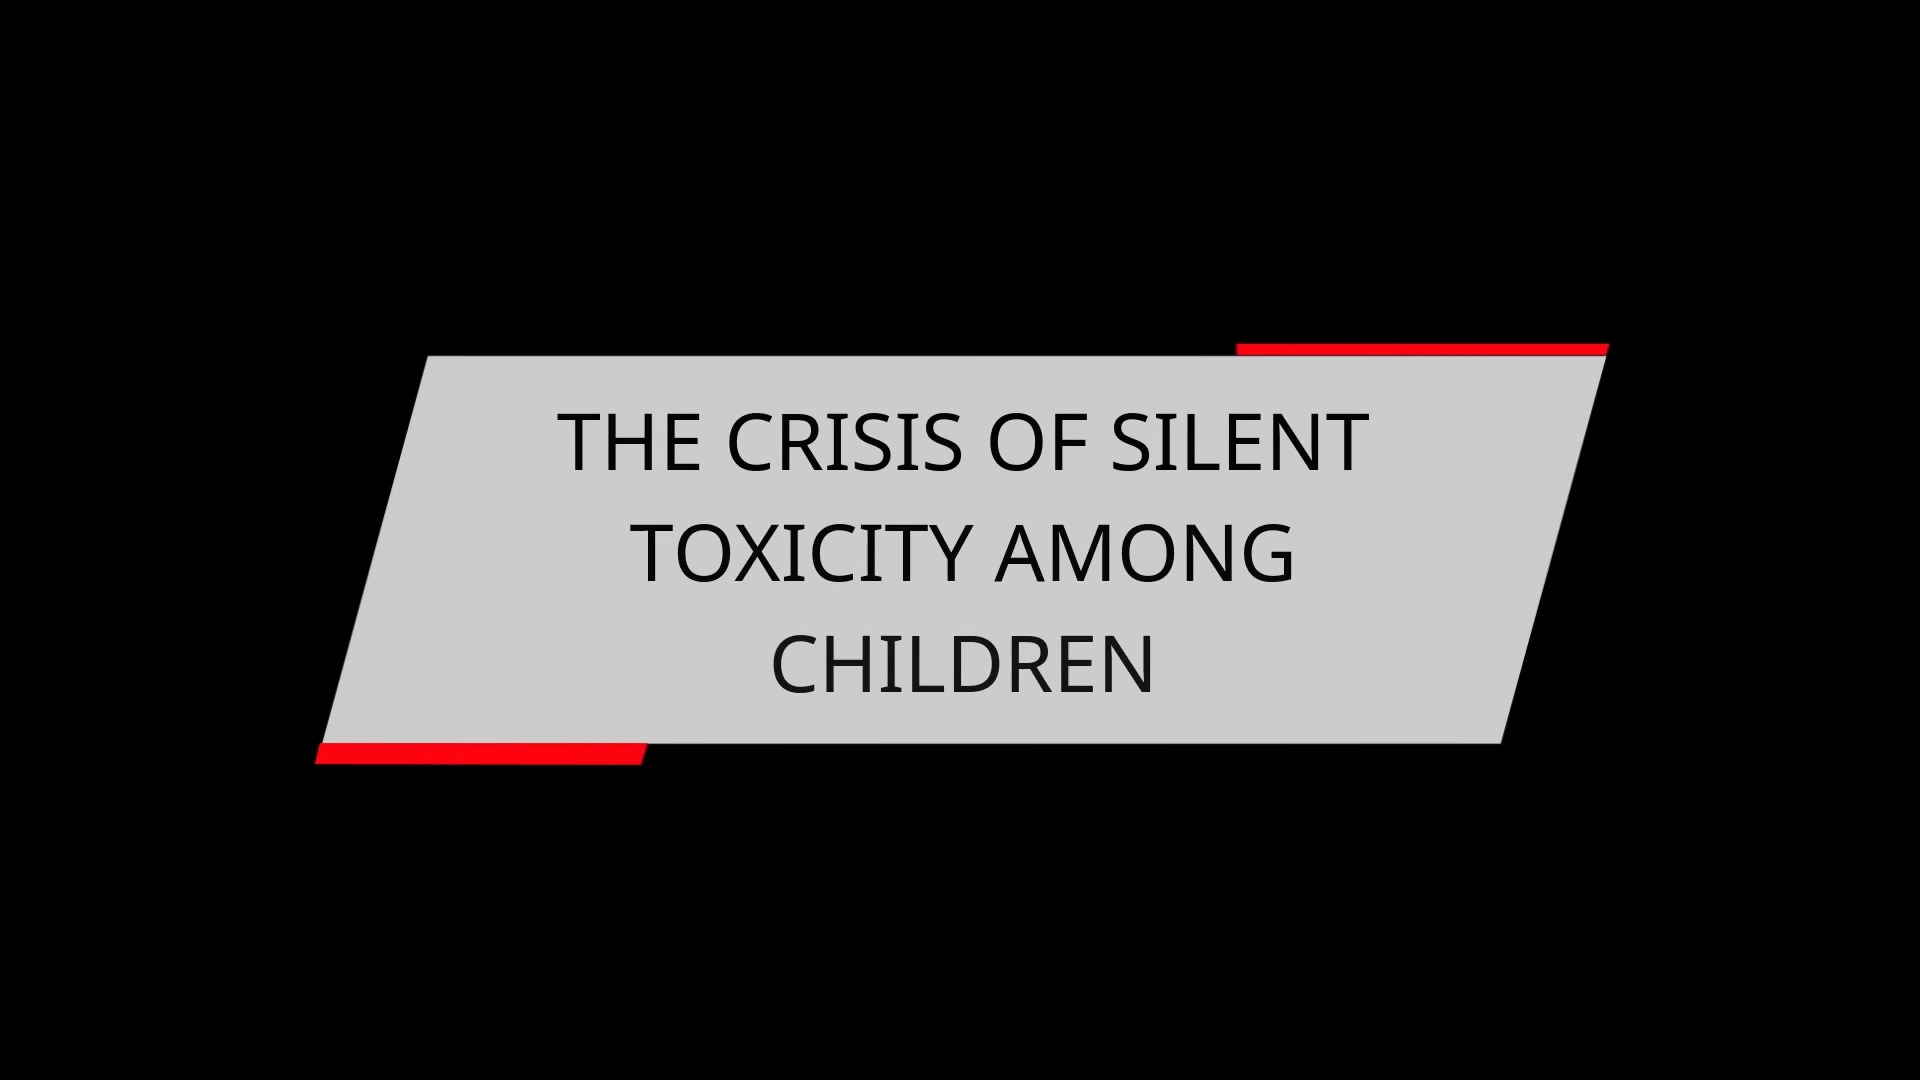 THE CRISIS OF SILENT TOXICITY AMONG CHILDREN